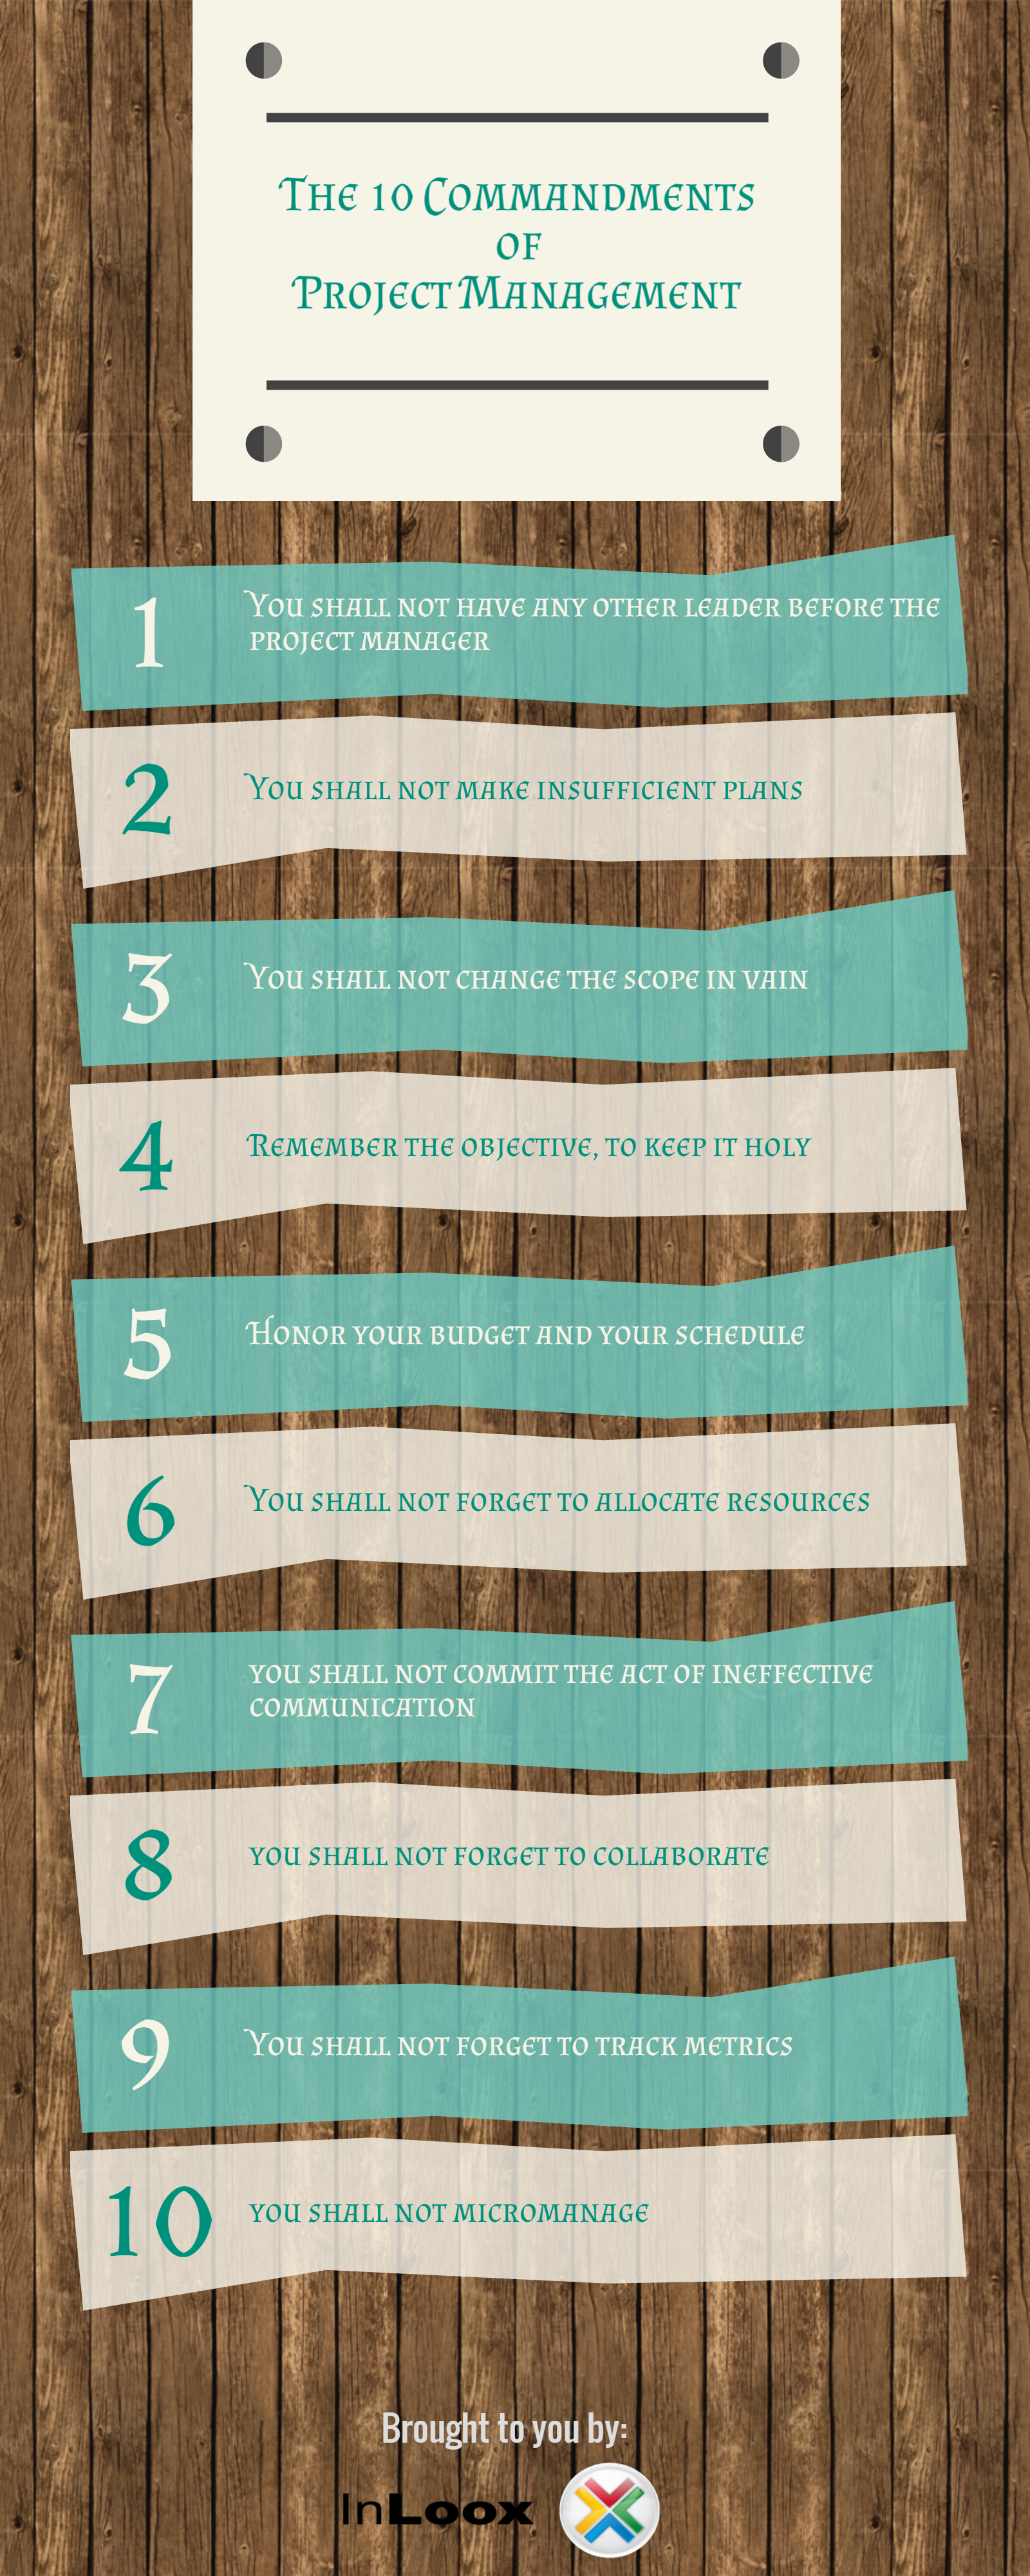 INFOGRAPHIC The 10 Commandments of Project Management